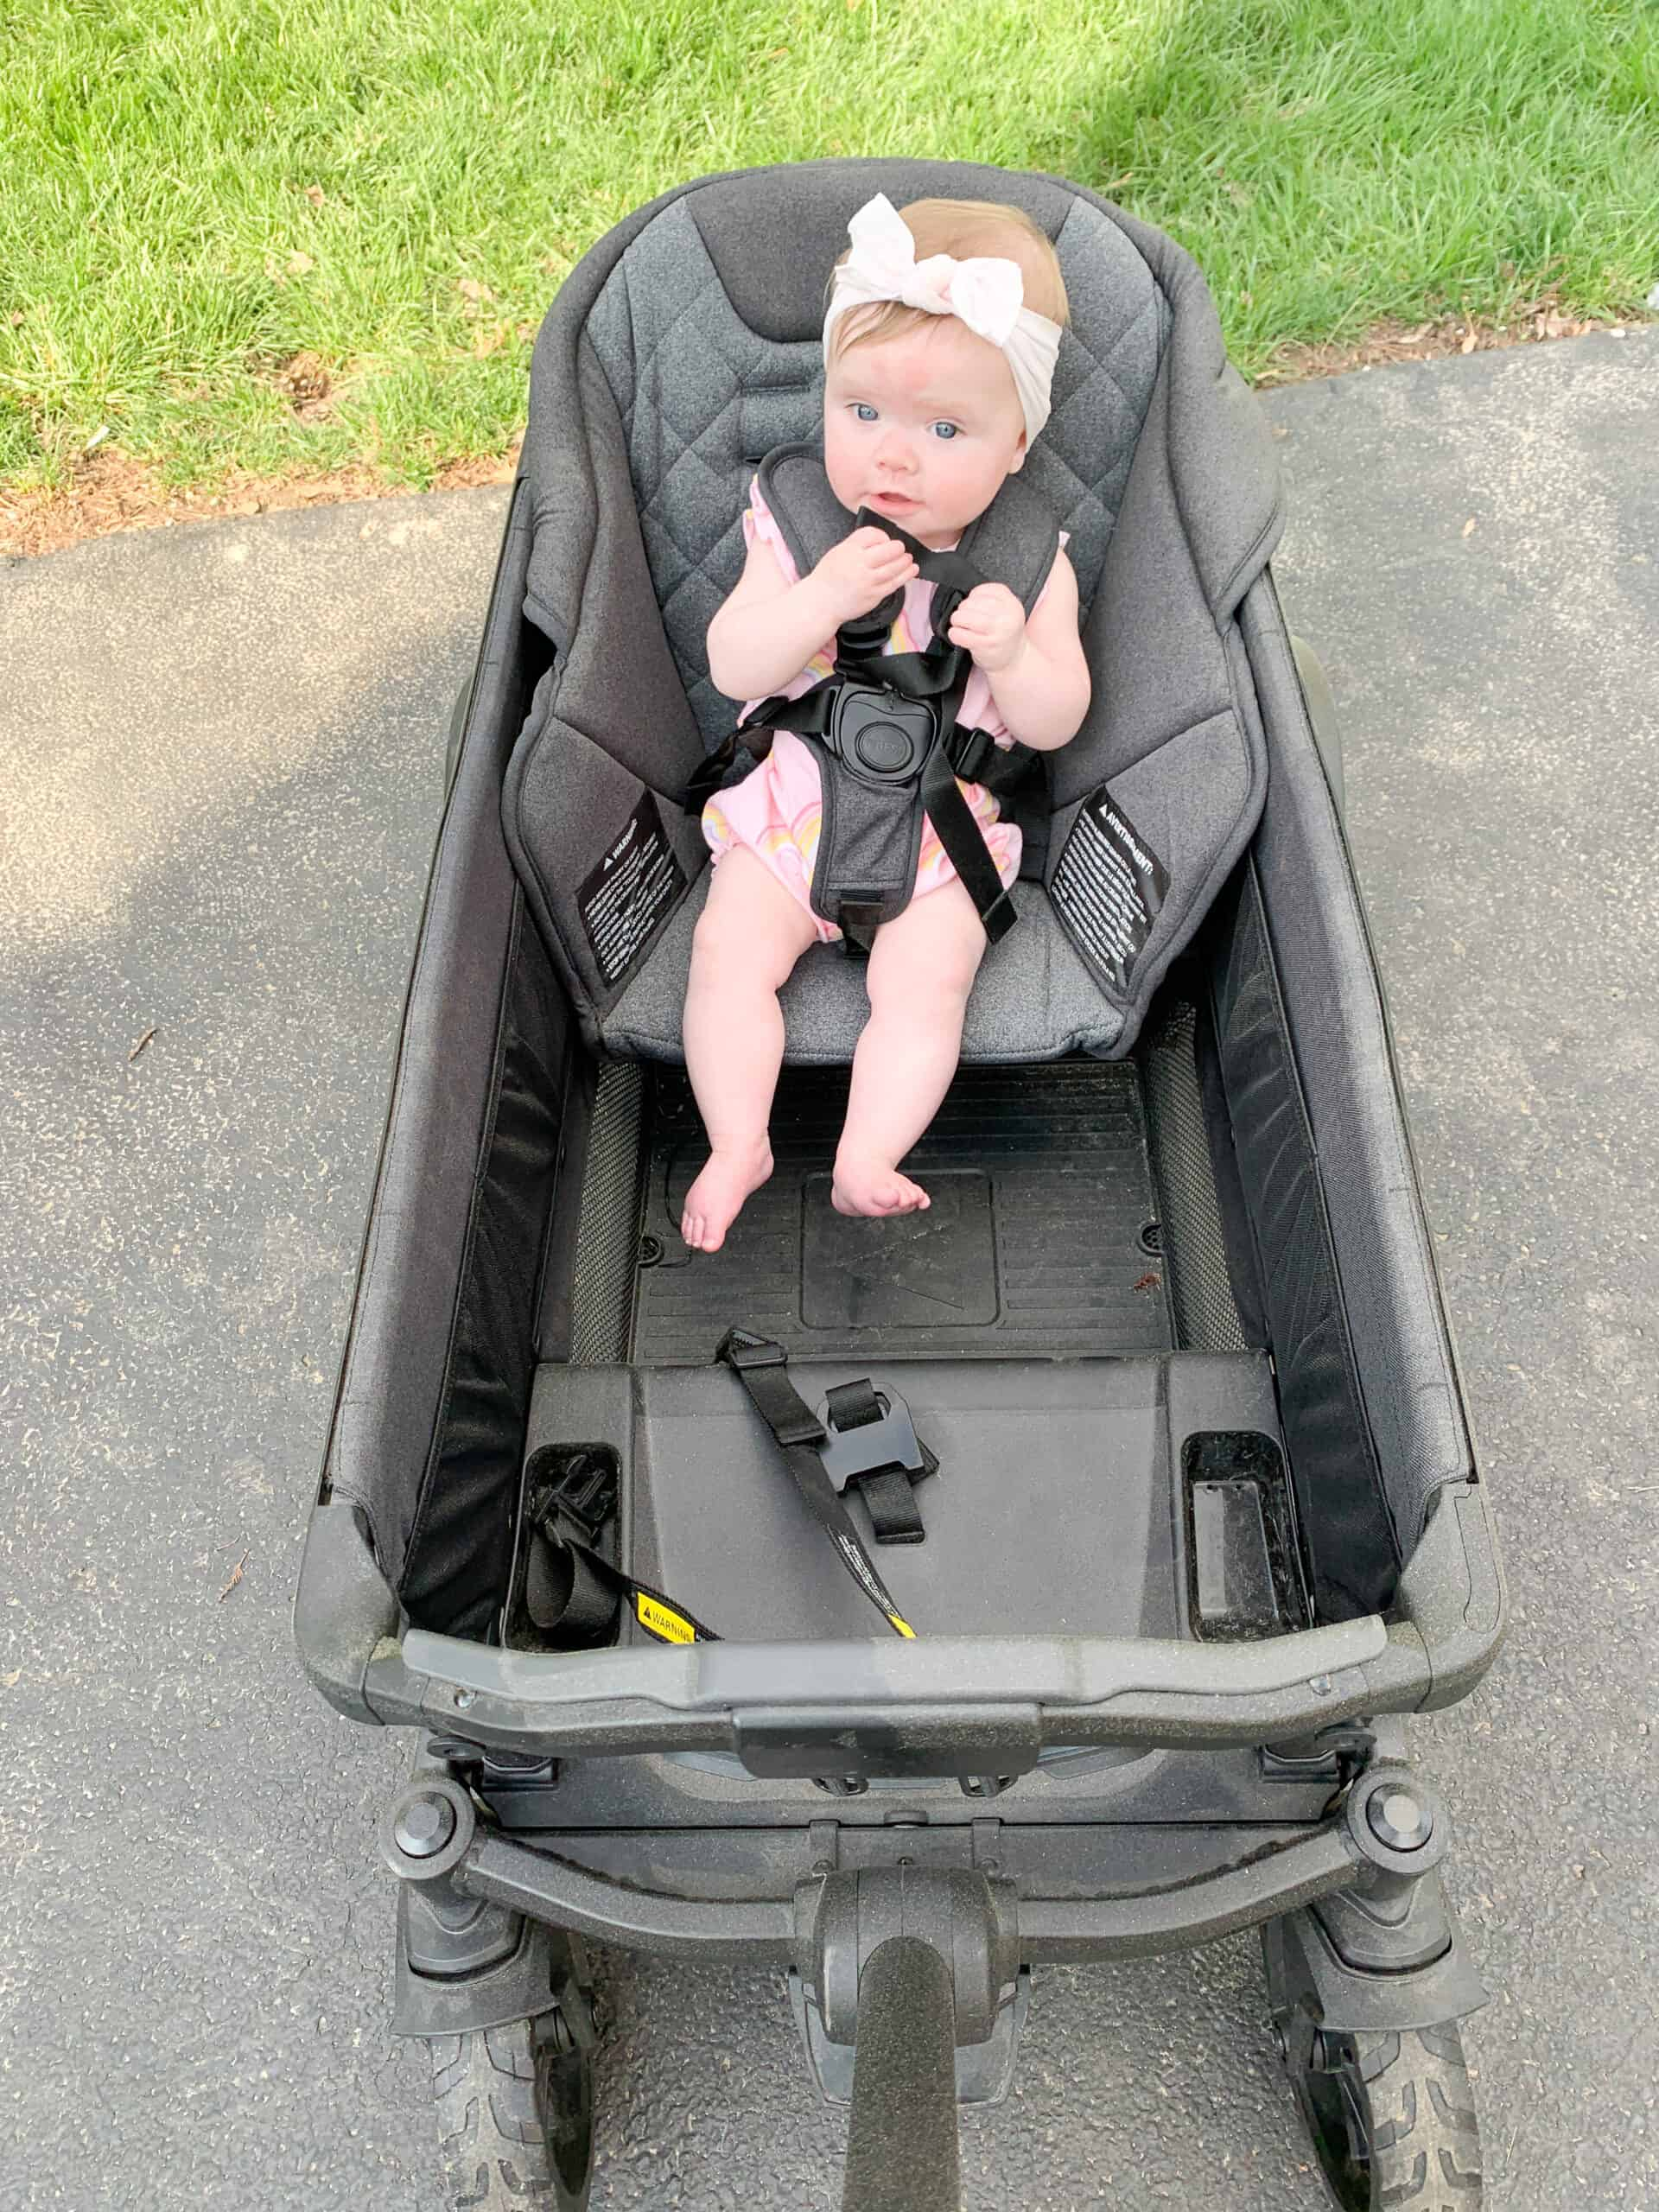 Baby girl in Veer wagon toddler seat